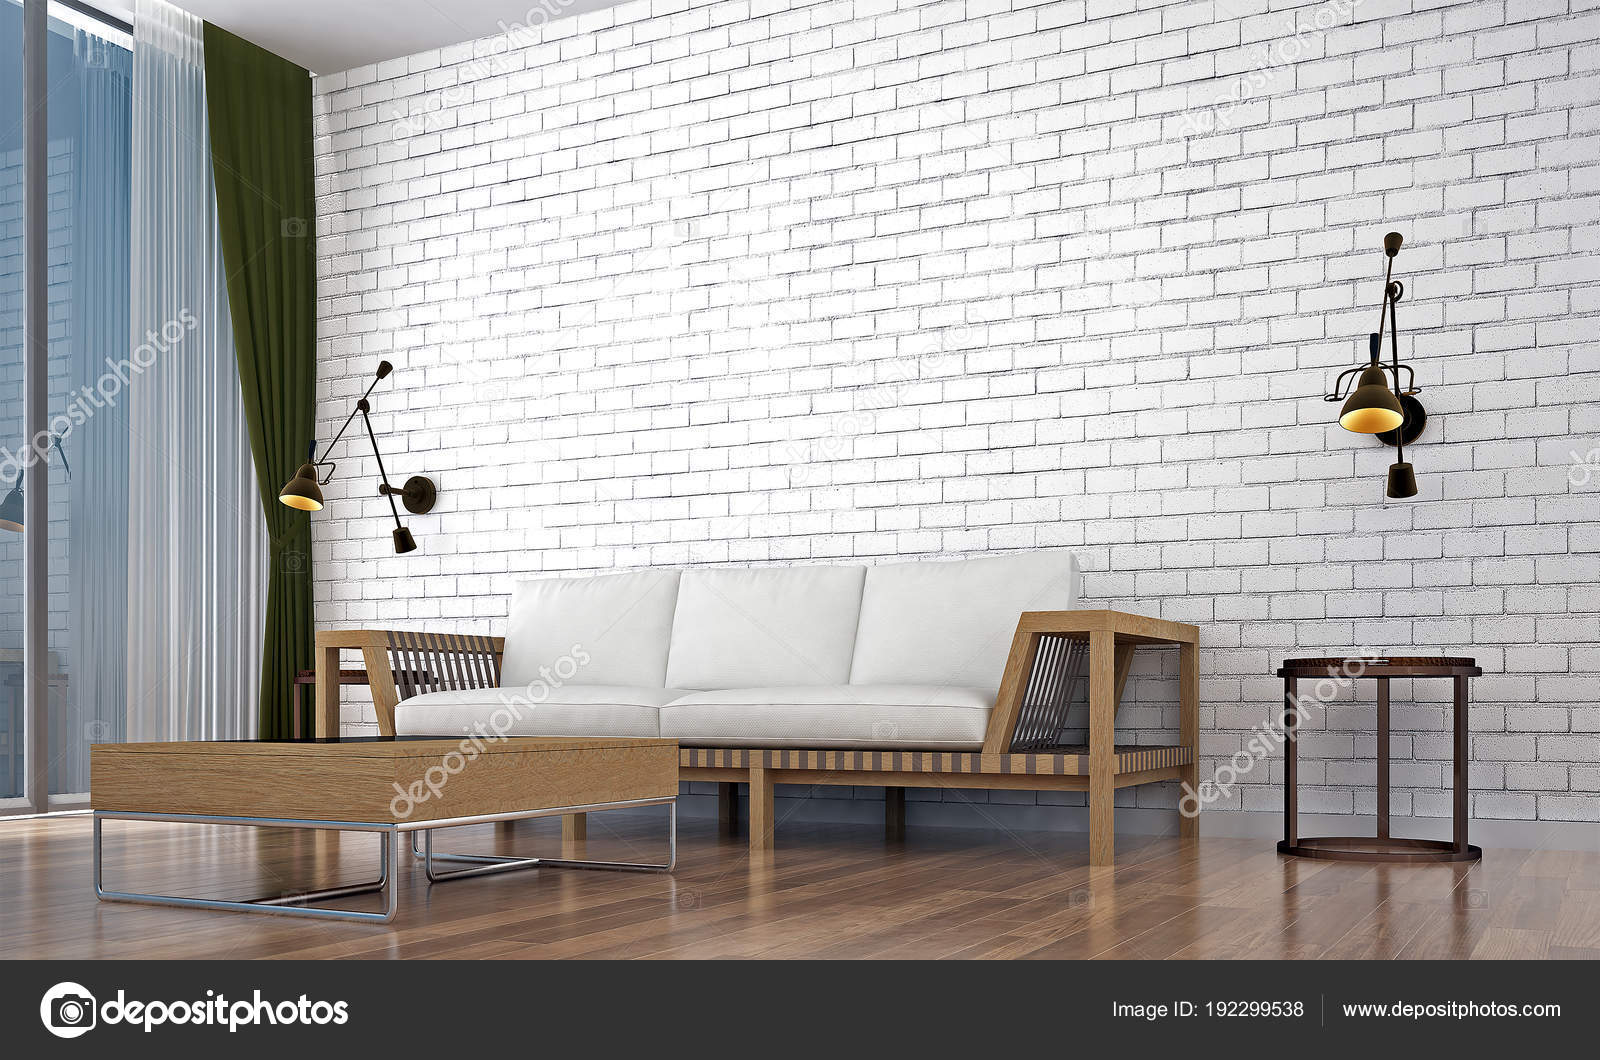 Living Room Interior Design White Brick Wall Texture Background Stock Photo Image By Teeraphan 192299538